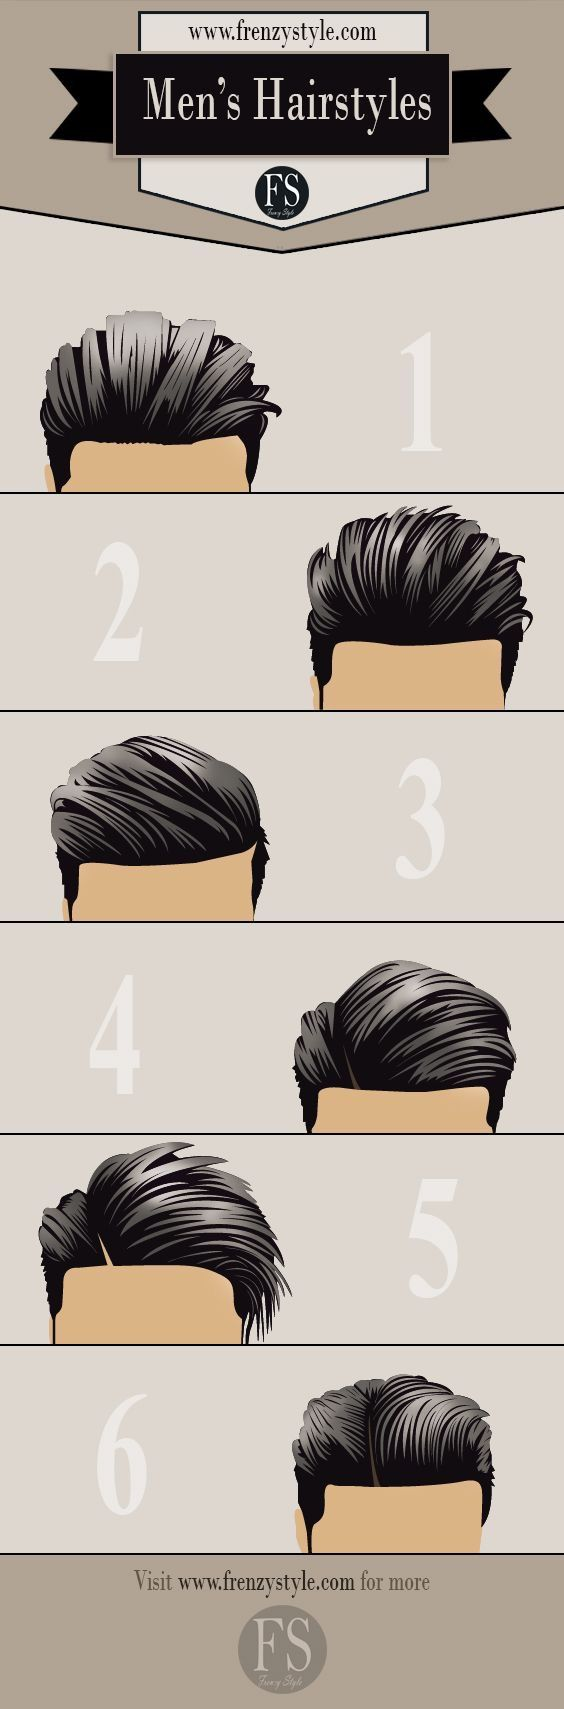 Pin On Cabelo Masculino